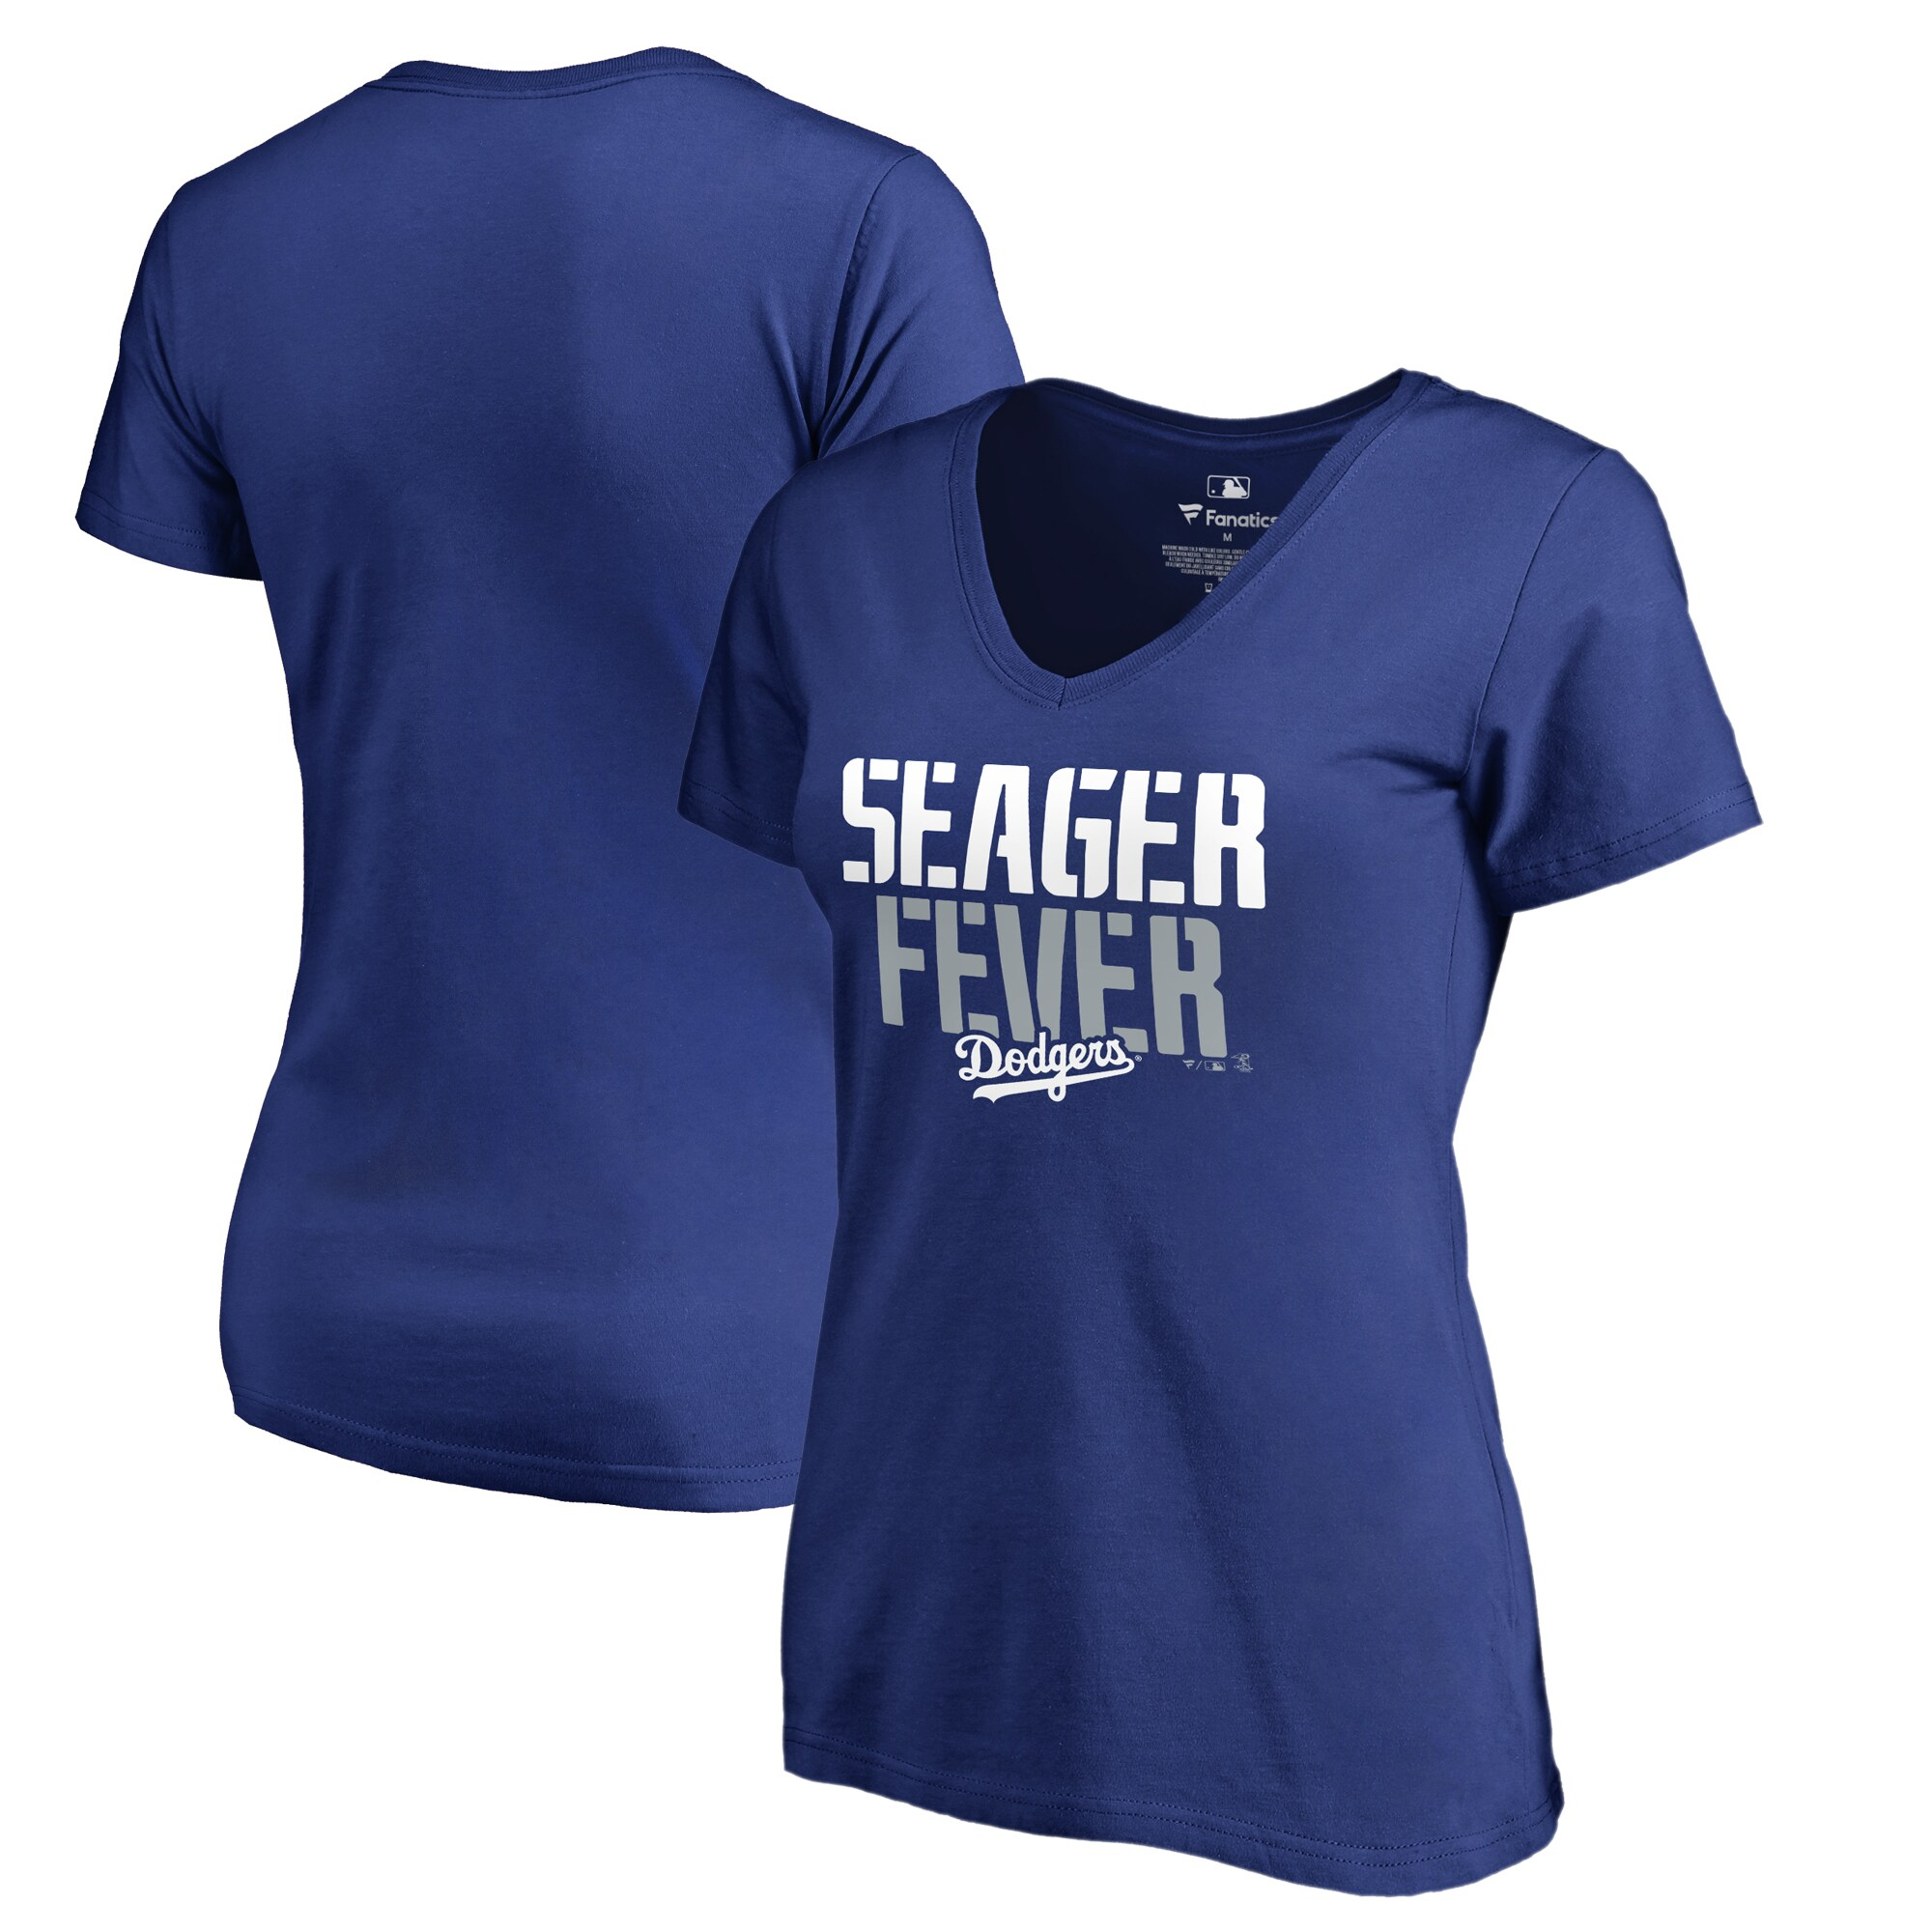 Corey Seager Los Angeles Dodgers Fanatics Branded Women's Player Hometown Collection Plus Size V-Neck T-Shirt - Royal